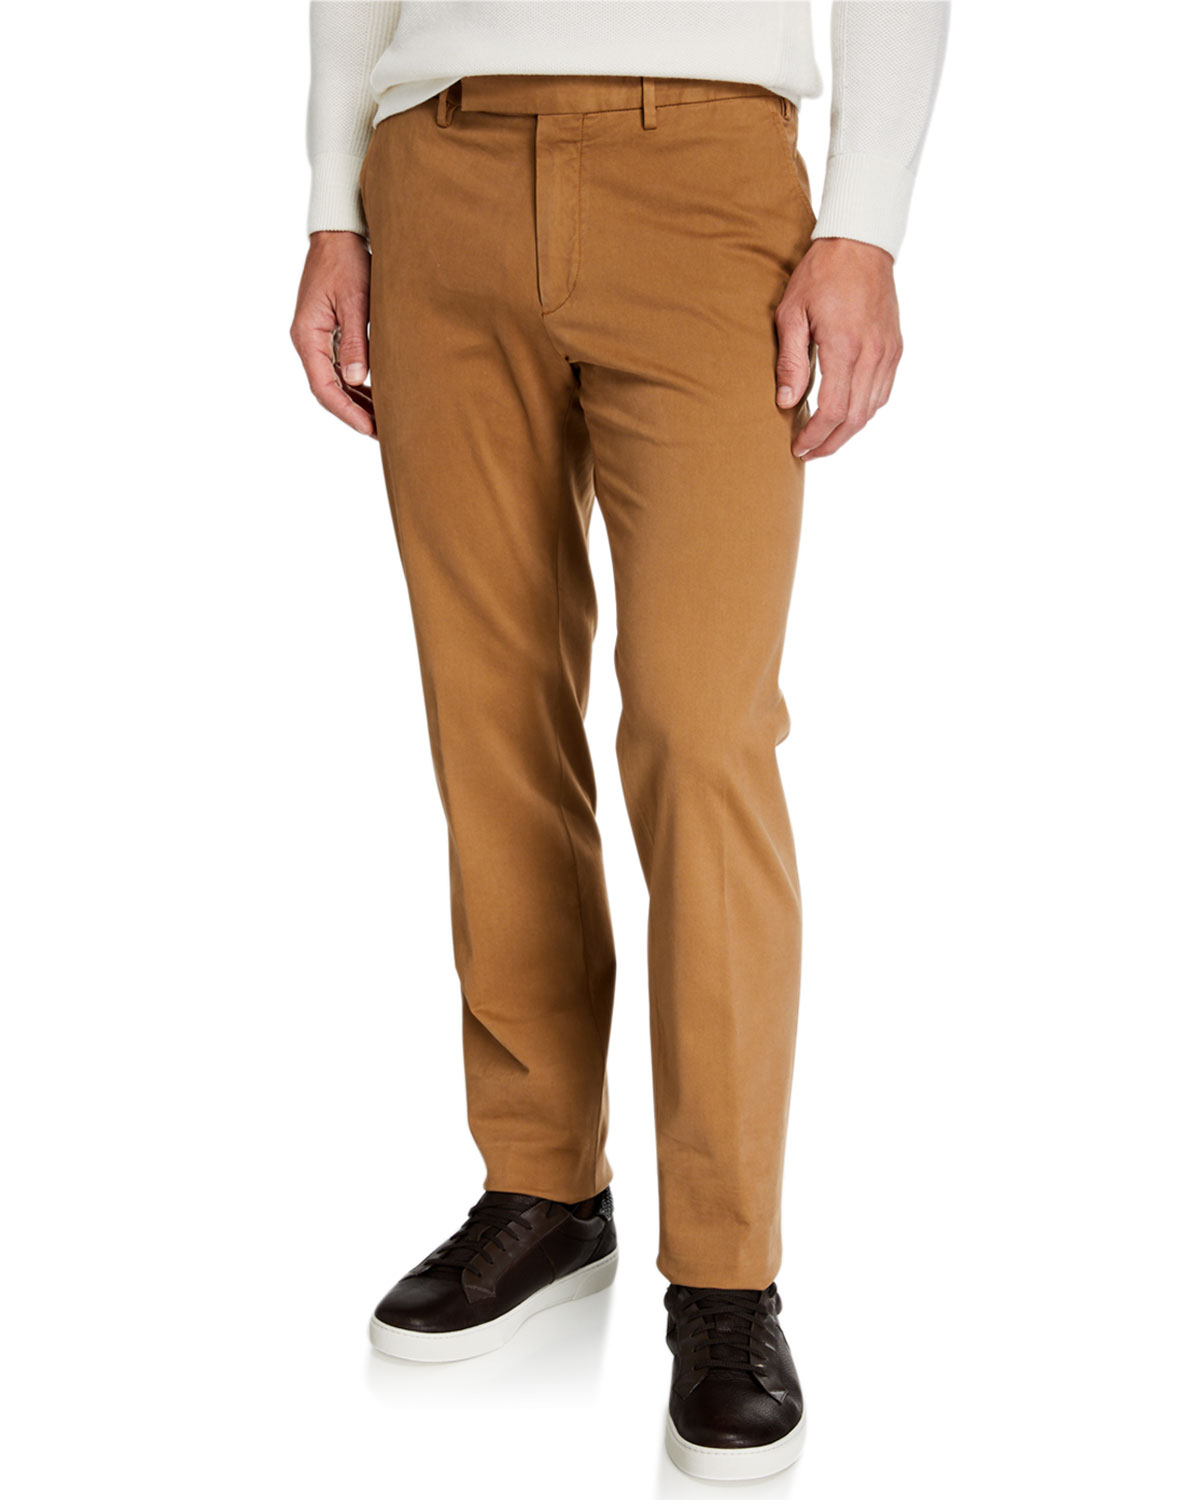 Ermenegildo Zegna Pants MEN'S GARMENT-DYED TAB TWILL PANTS